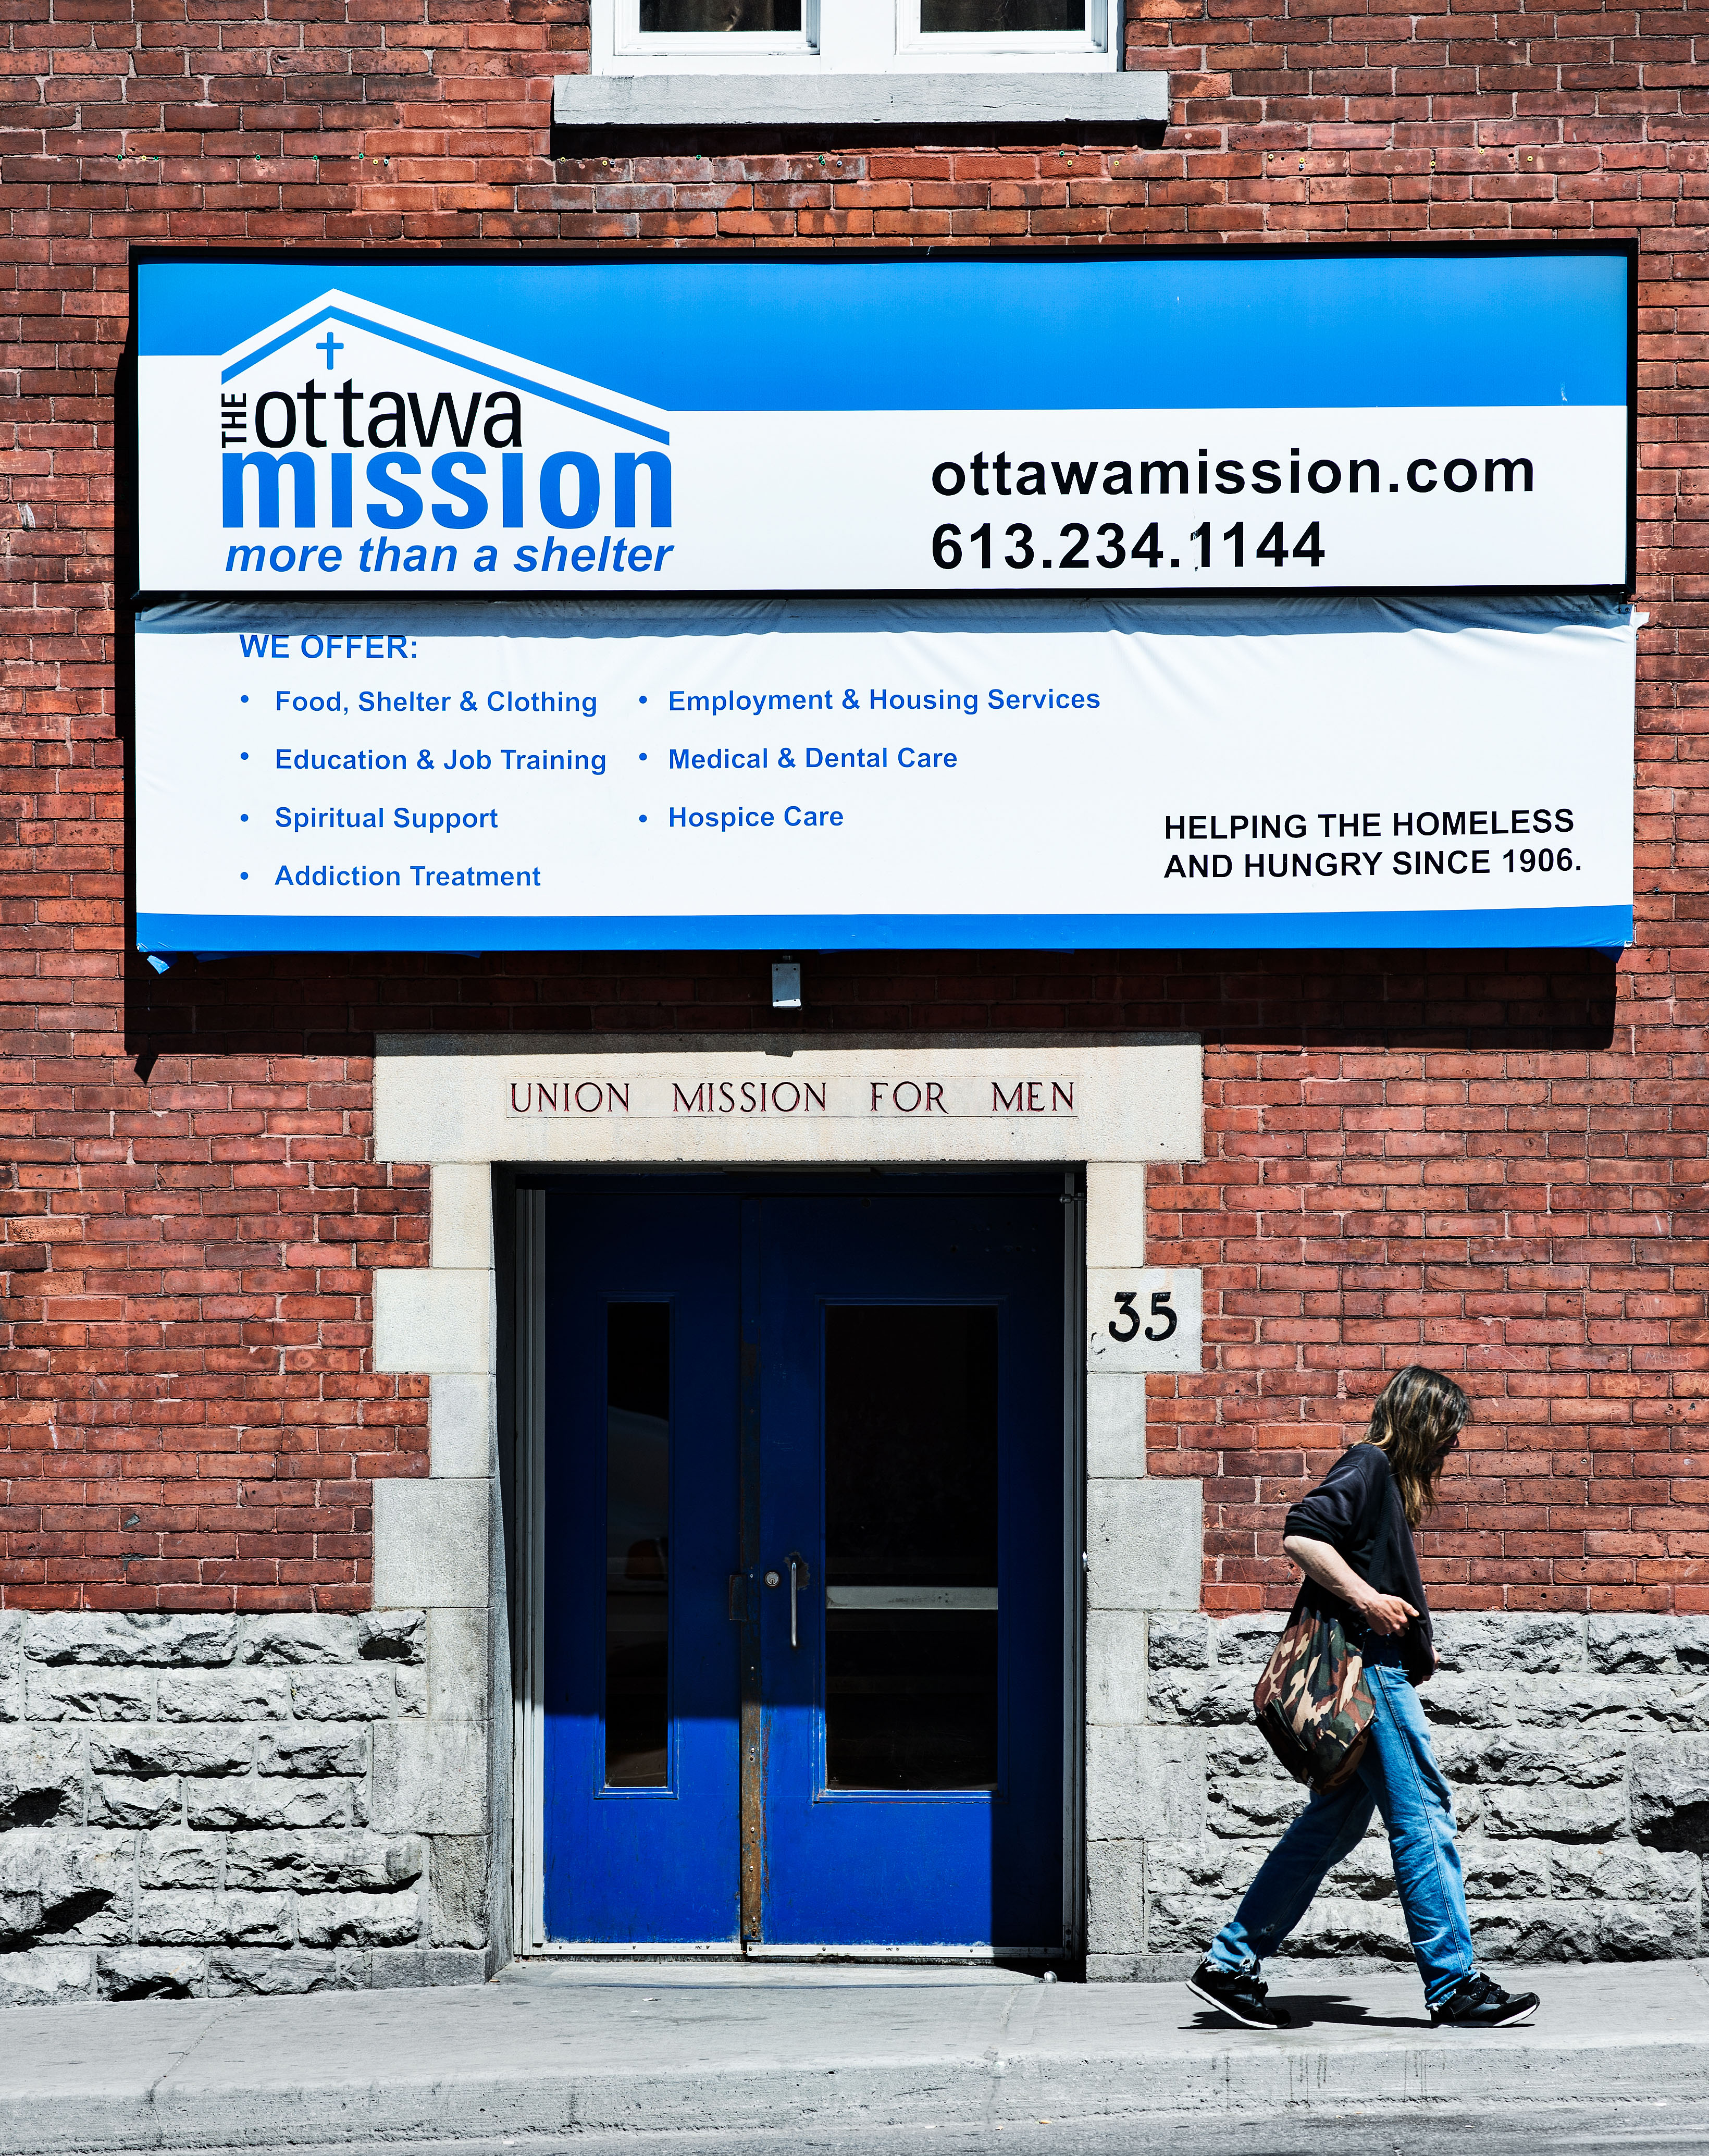 Image of the Ottawa Mission